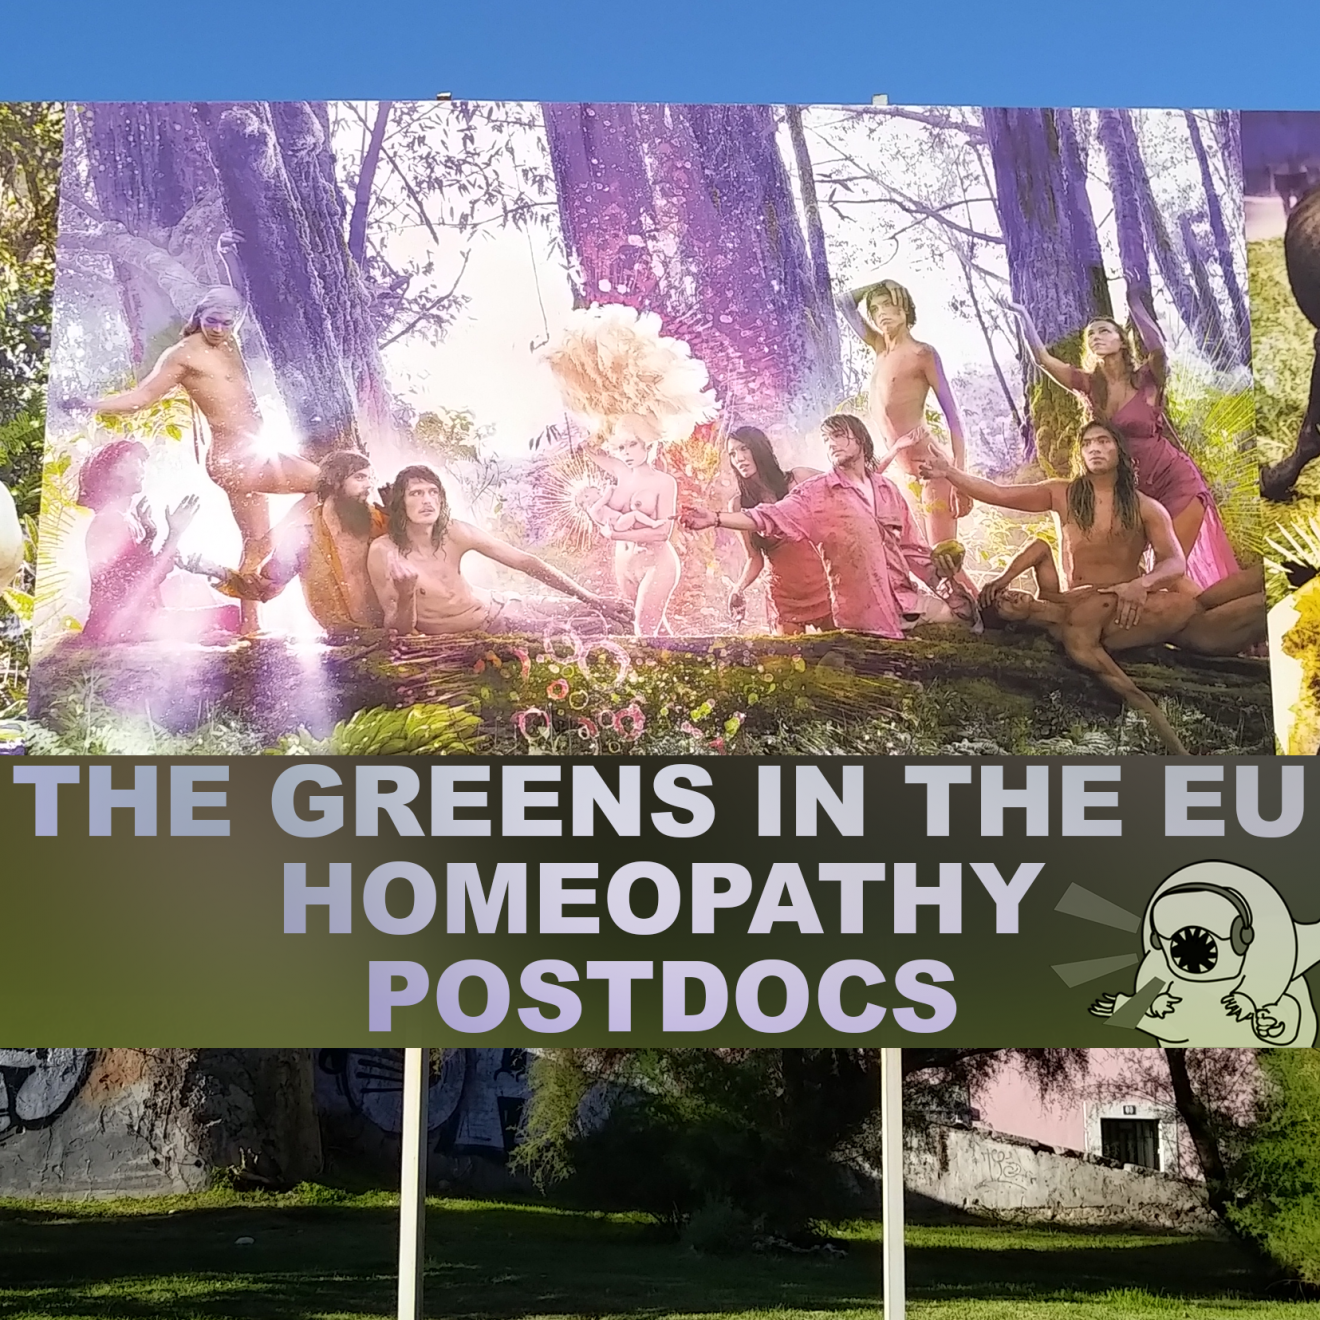 28 B&D: The Rise of the Greens in the EU, Homeopathy, & Postdocs